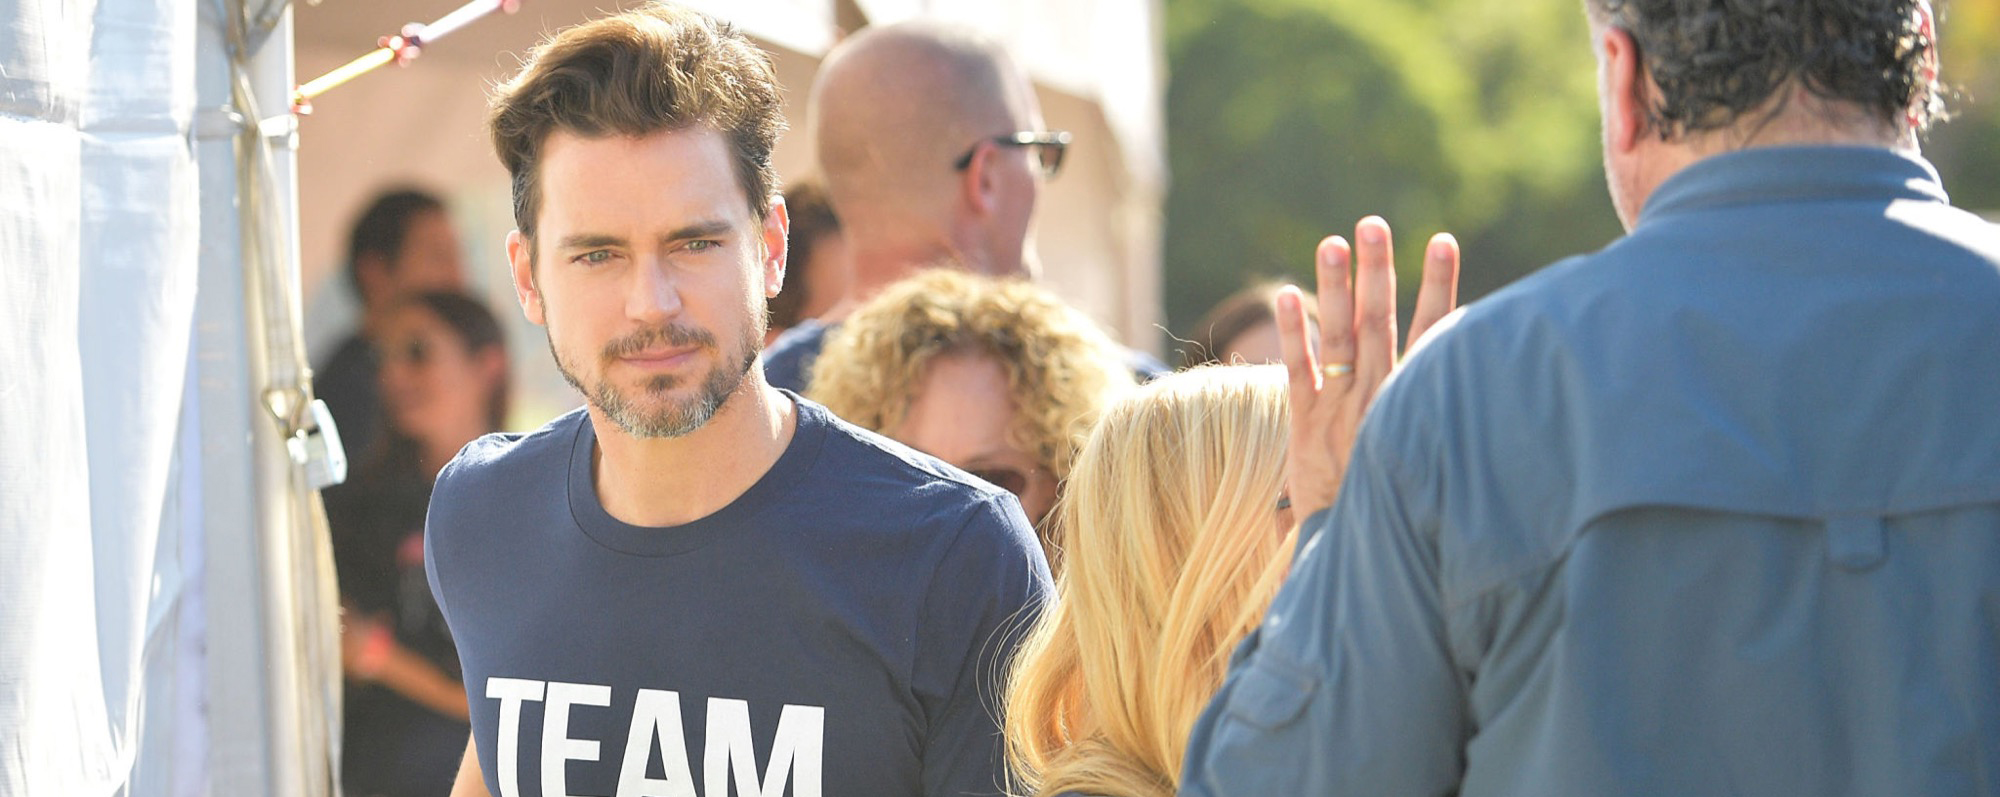 Matt and family attends 15th annual L.A. County Walk to Defeat ALS